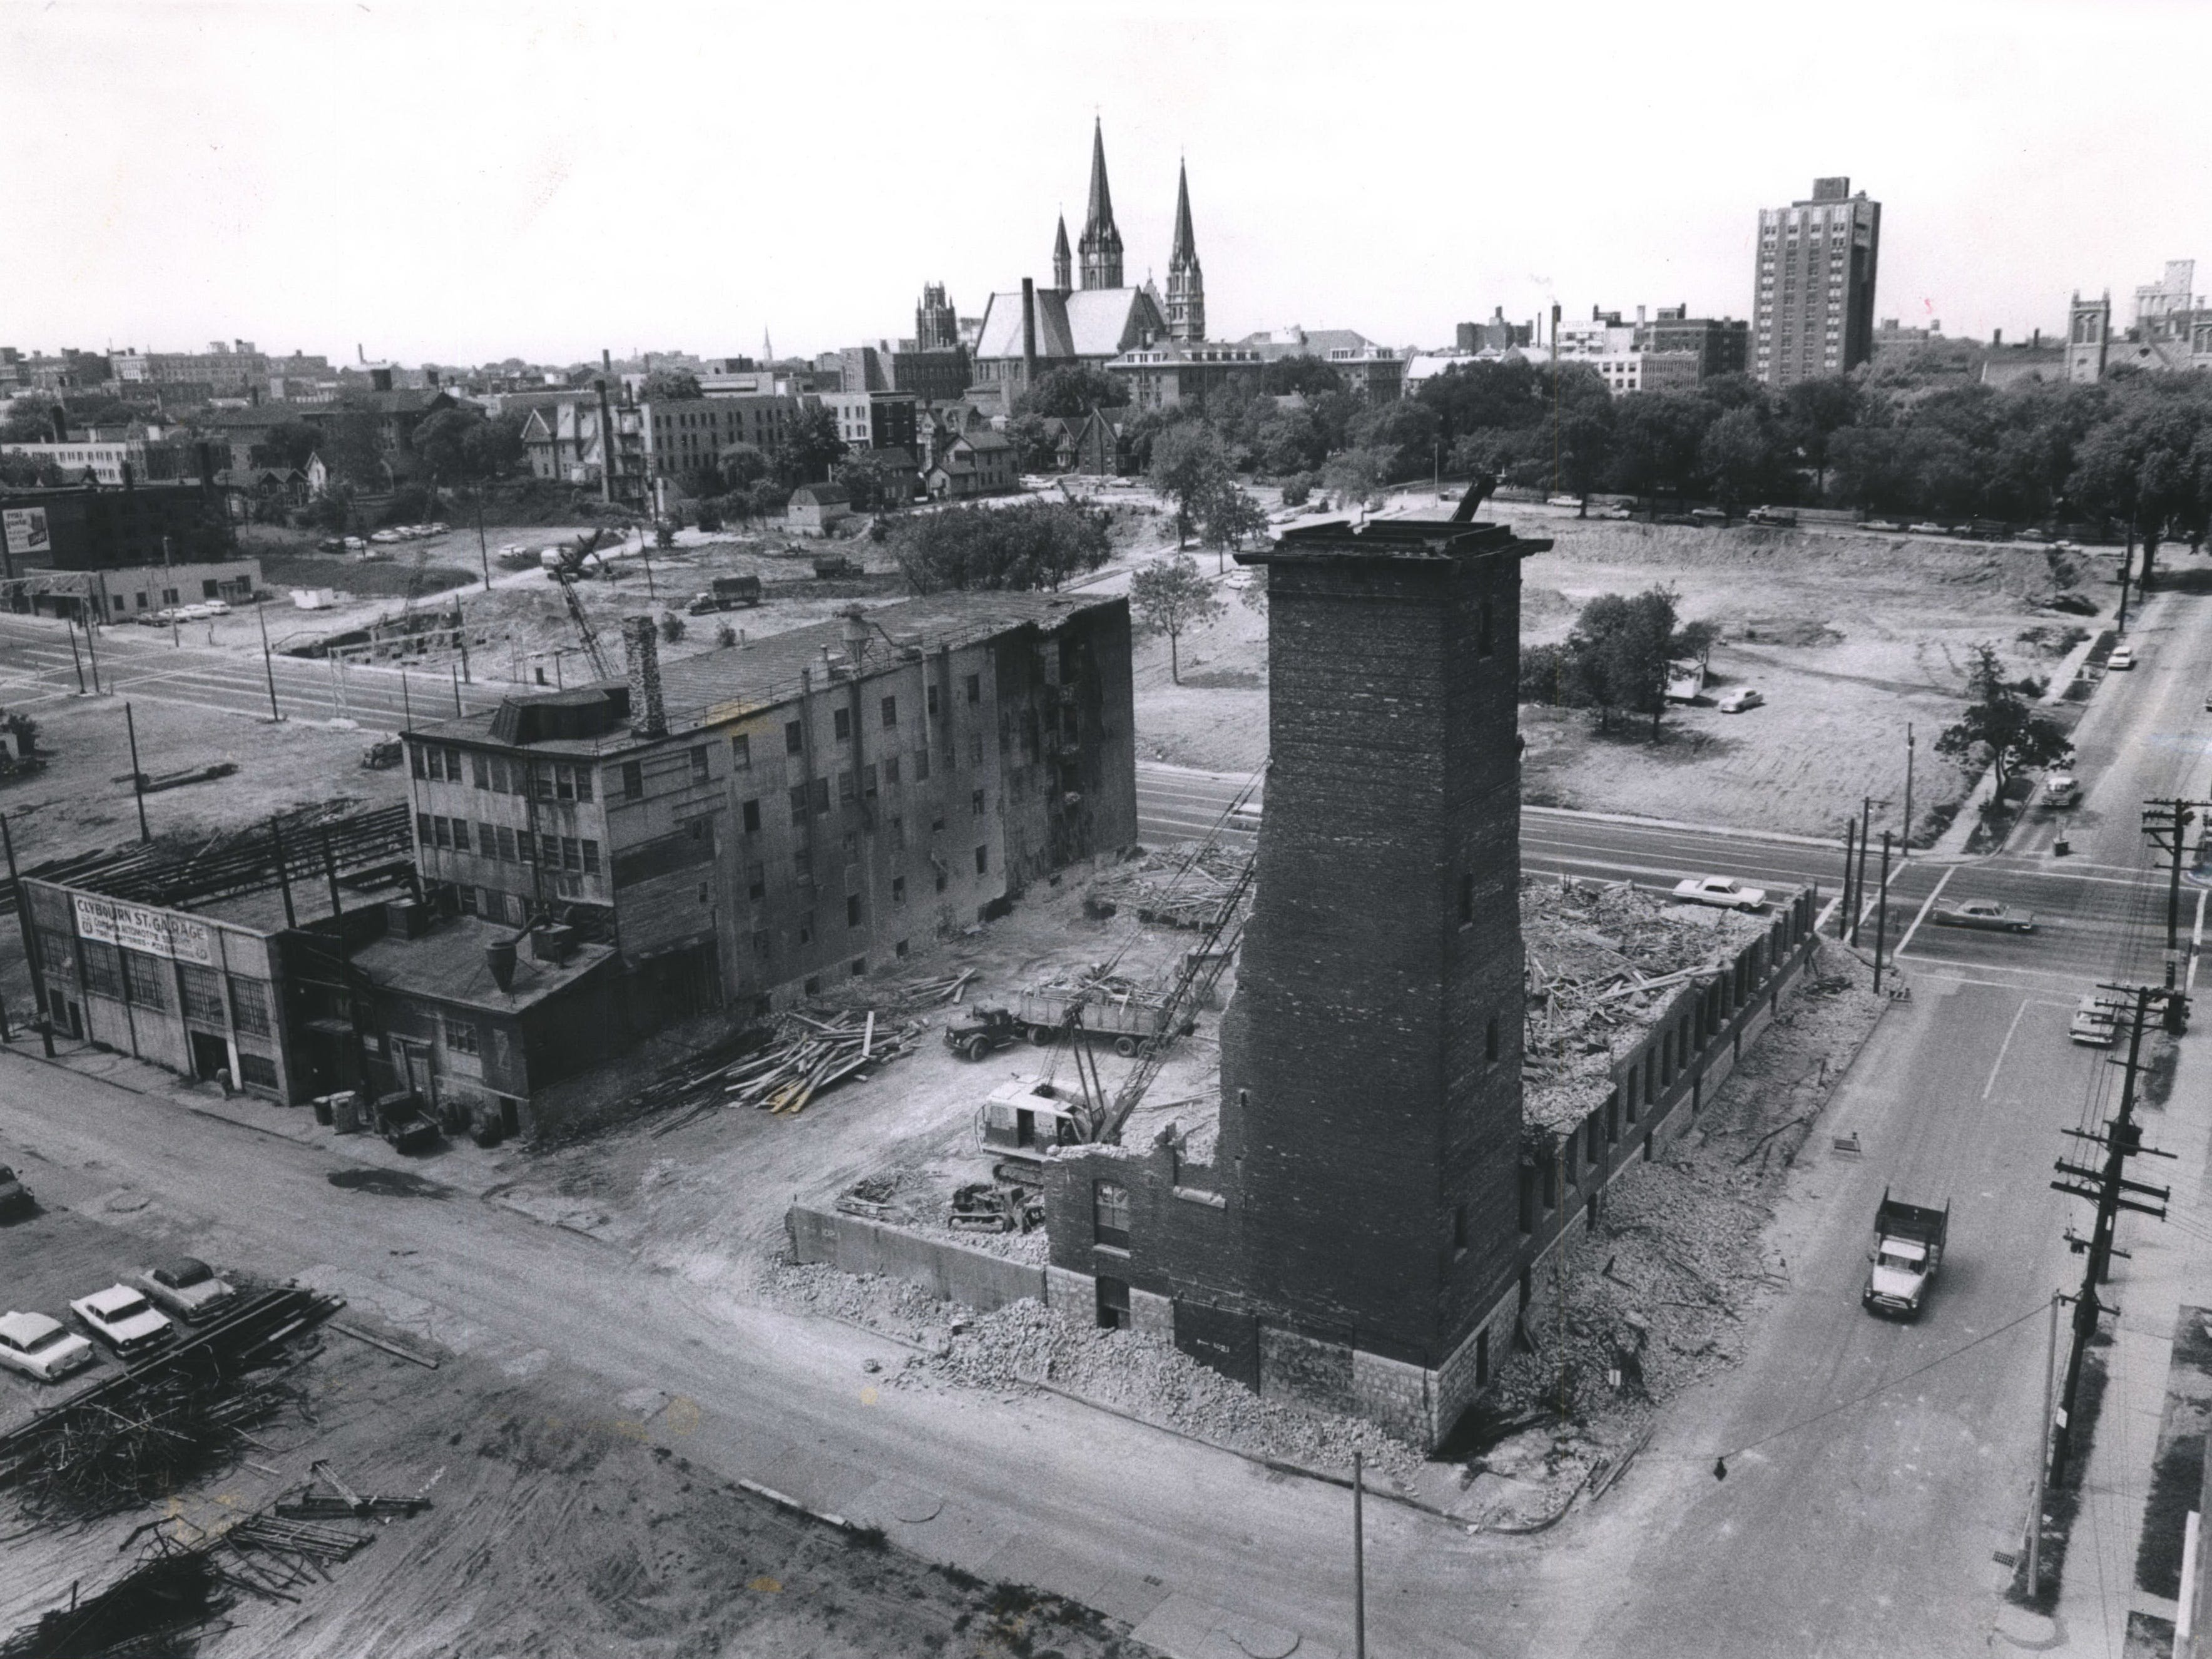 The spaces get a lot more wide open in downtown Milwaukee in 1964 as demolition continues to clear the way for the new Central Interchange linking freeways going east, west, north and south to and from Milwaukee. This was at N. 10th and W. Clybourn streets. The tall spires in the background are from Gesu Church. This photo was published in the June 4, 1964, Milwaukee Journal.